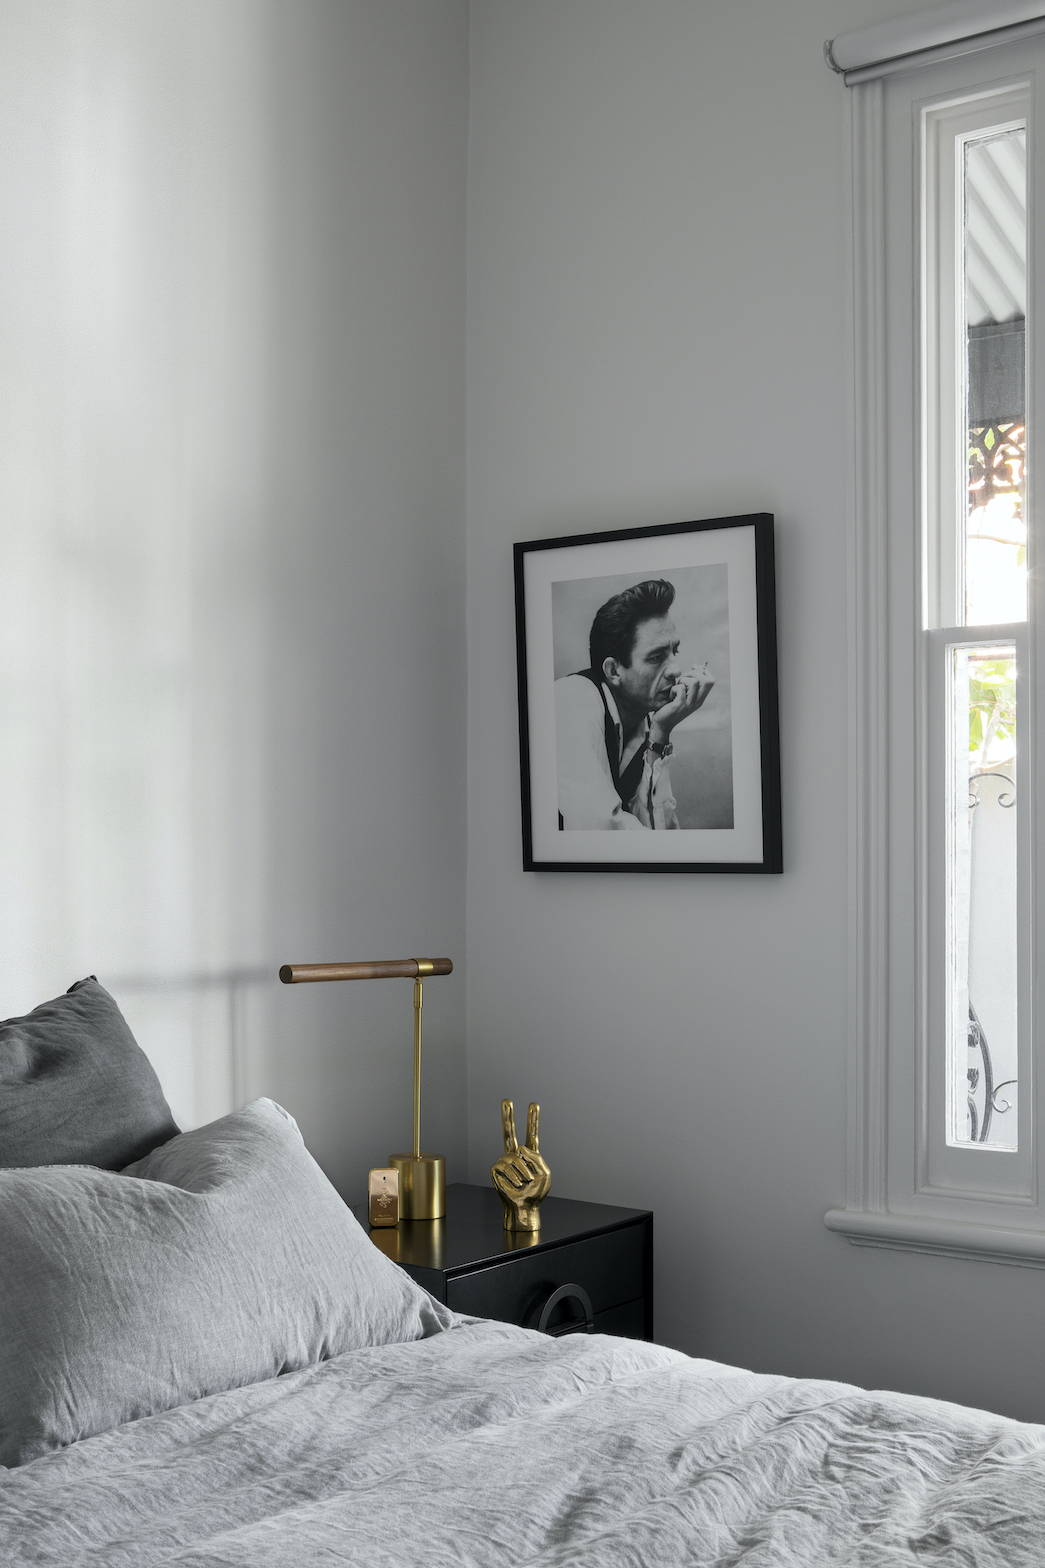 Black and white framed photograph of Johnny Cash in a bedroom setting